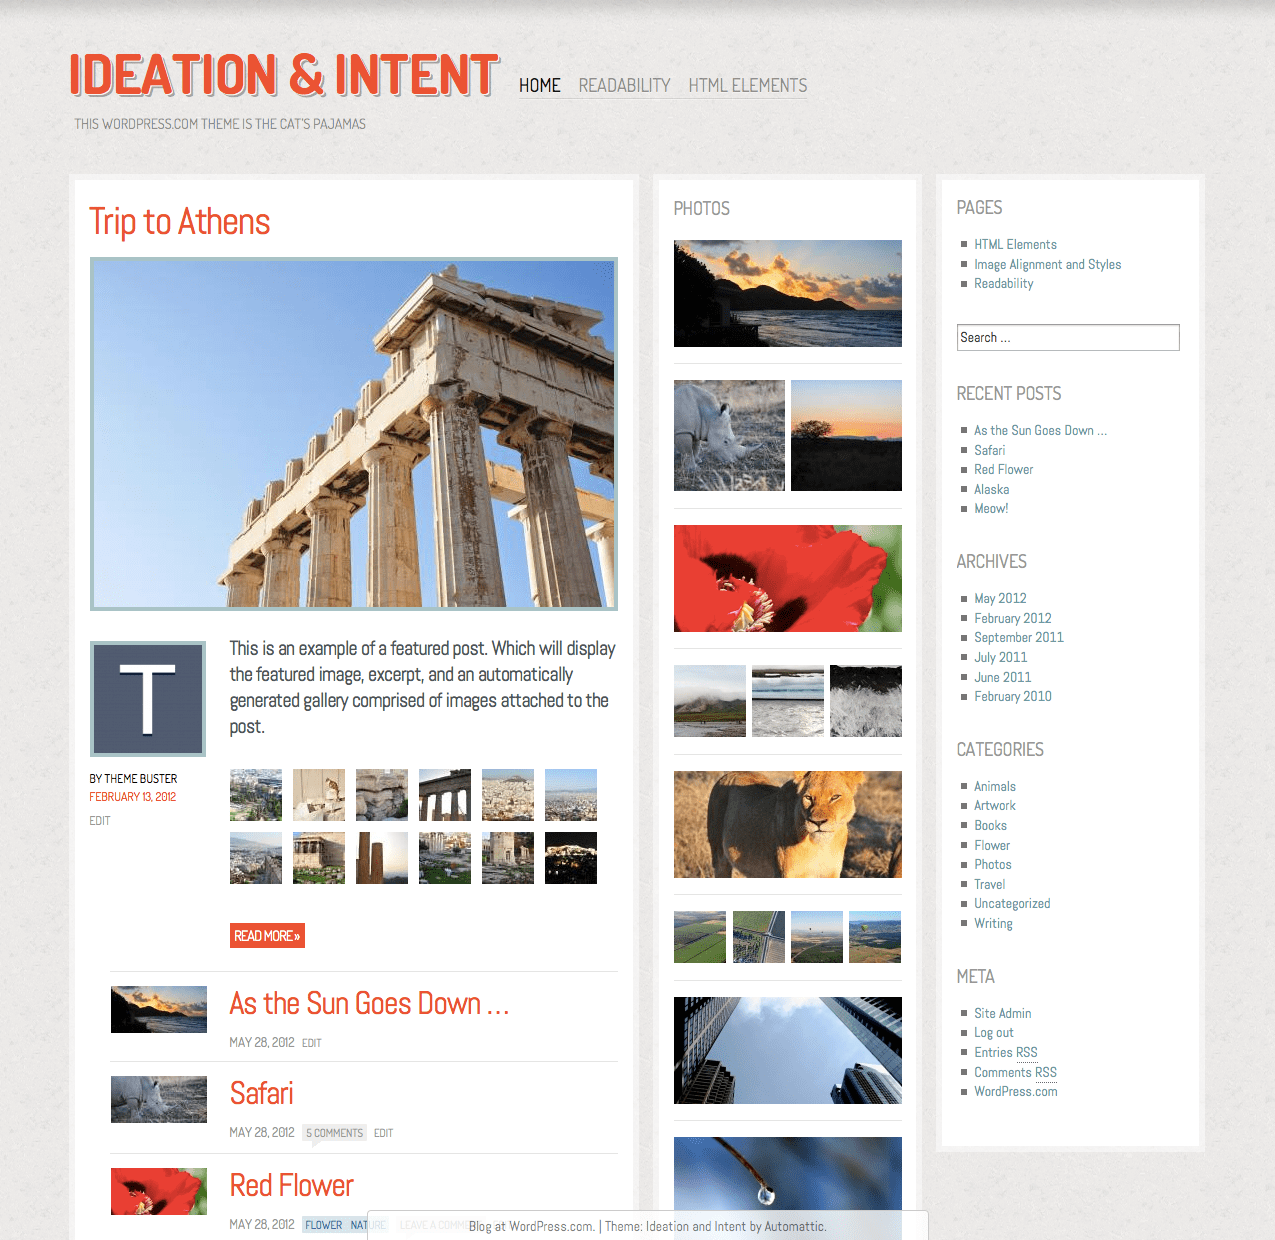 Screenshot of the Ideation & Intent theme for WordPress.com